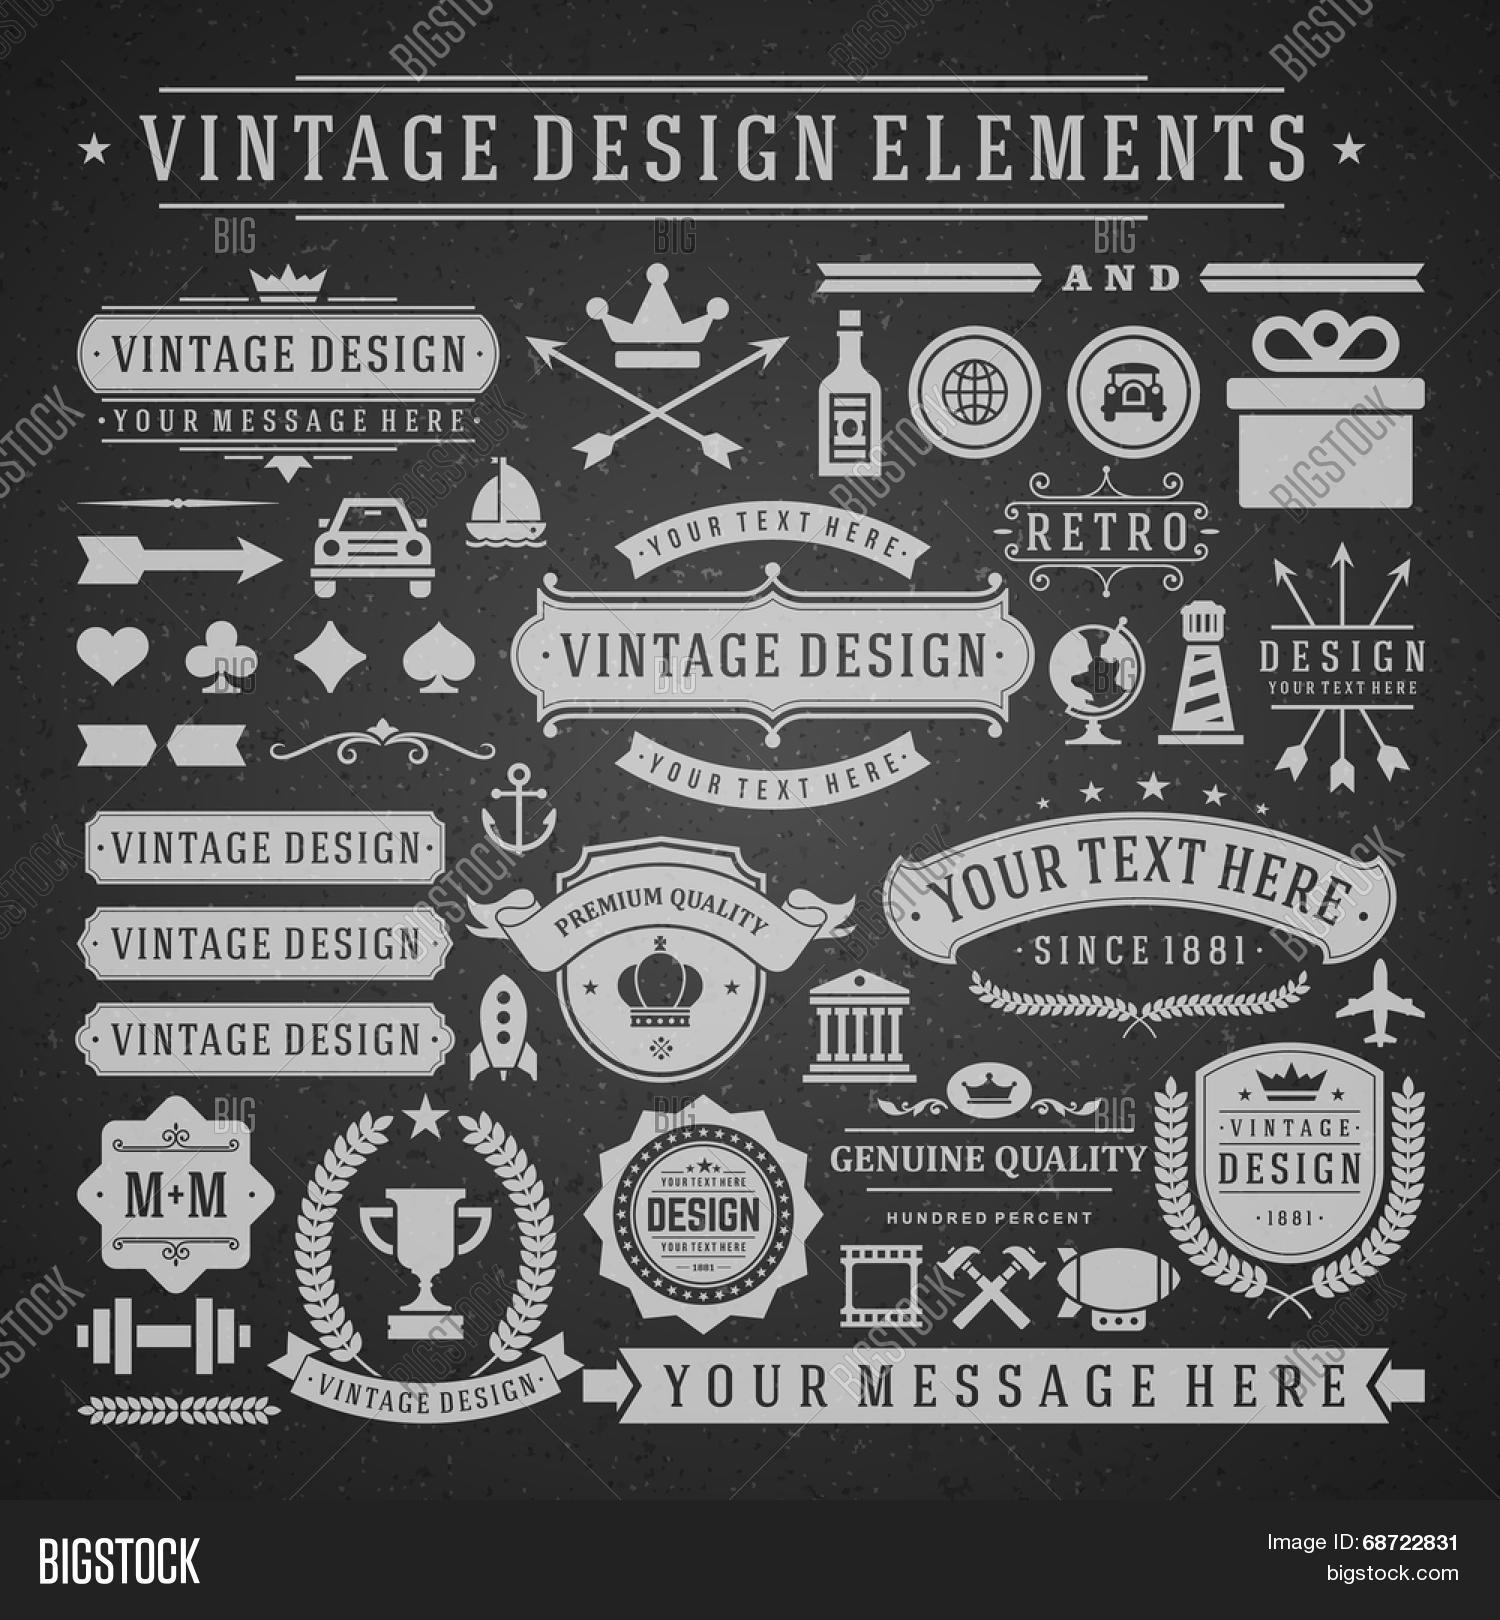 Vintage Vector Design Elements Retro Chalk Style Golden Typographic Labels Tags Badges